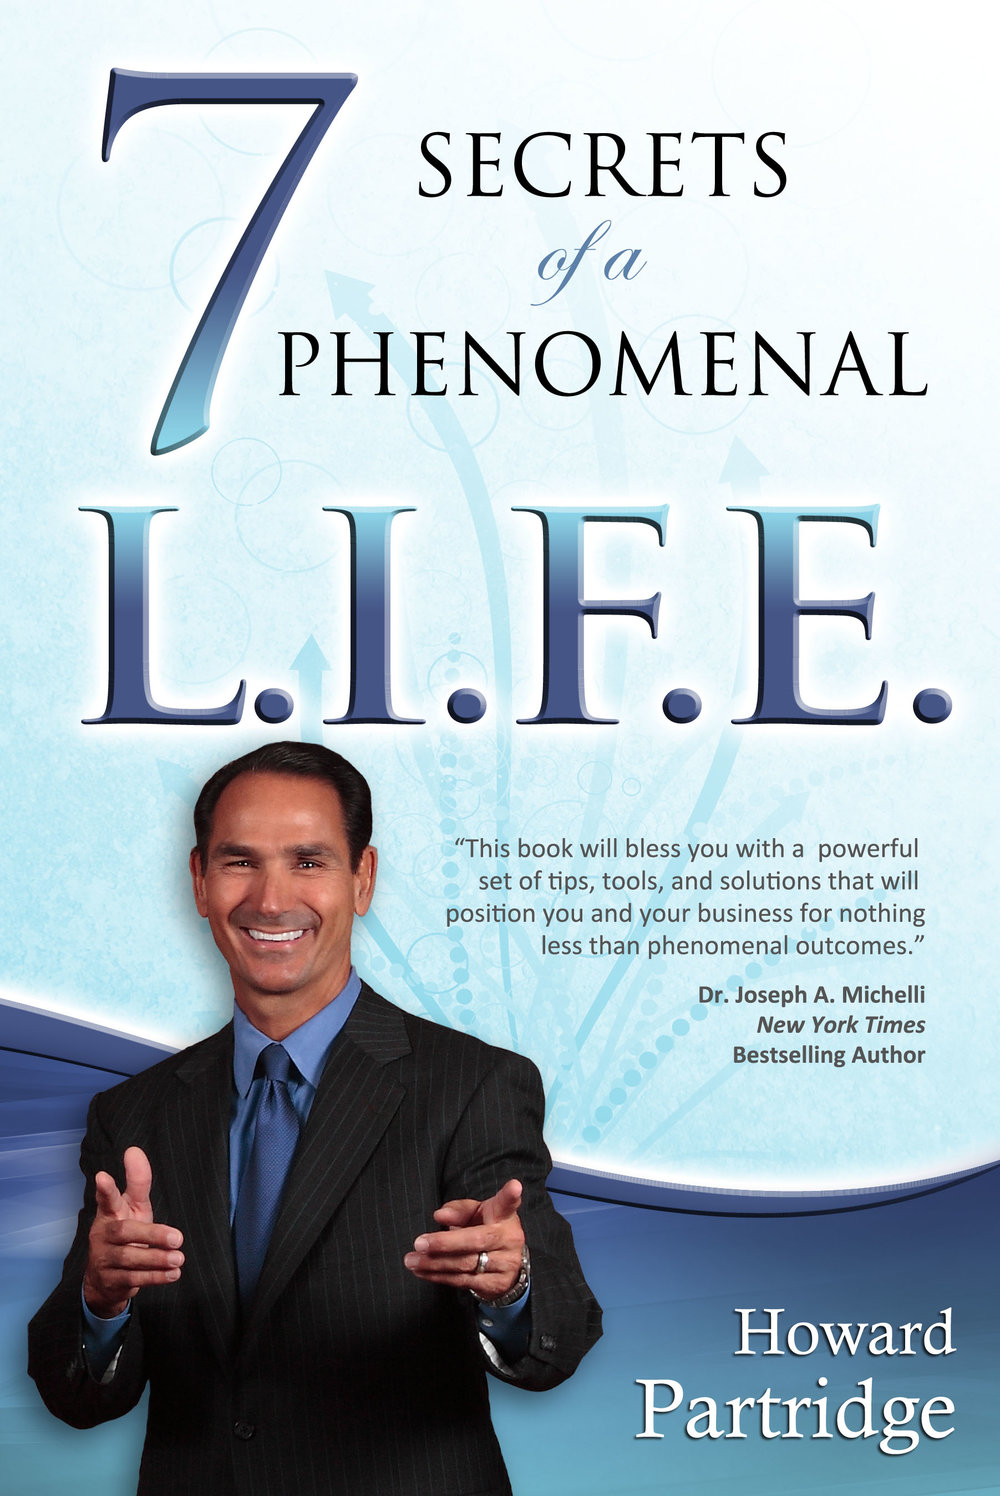 7 Secrets of a Phenomenal L.I.F.E. - Howard Partridge